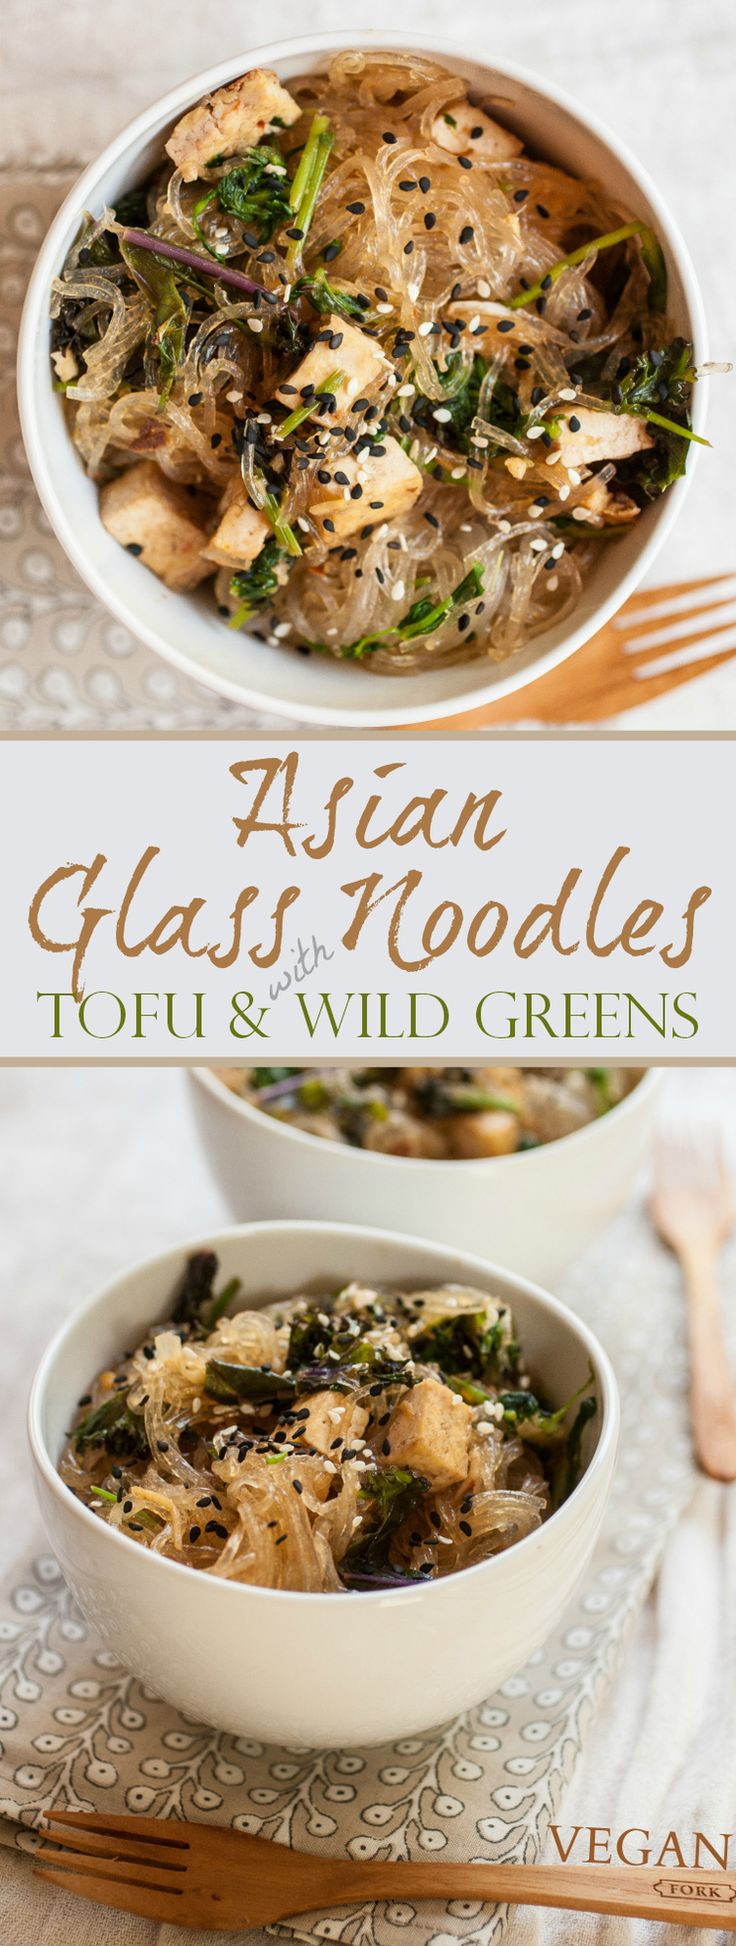 Asian Glass Noodles with Tofu & Wild Greens — Produce On Parade - This quick asian dish is infused with ginger, garlic, lime, and sweet chili. Studded with browned tofu, kale and wild greens are strewn throughout the chewy, flavorful glass noodles.